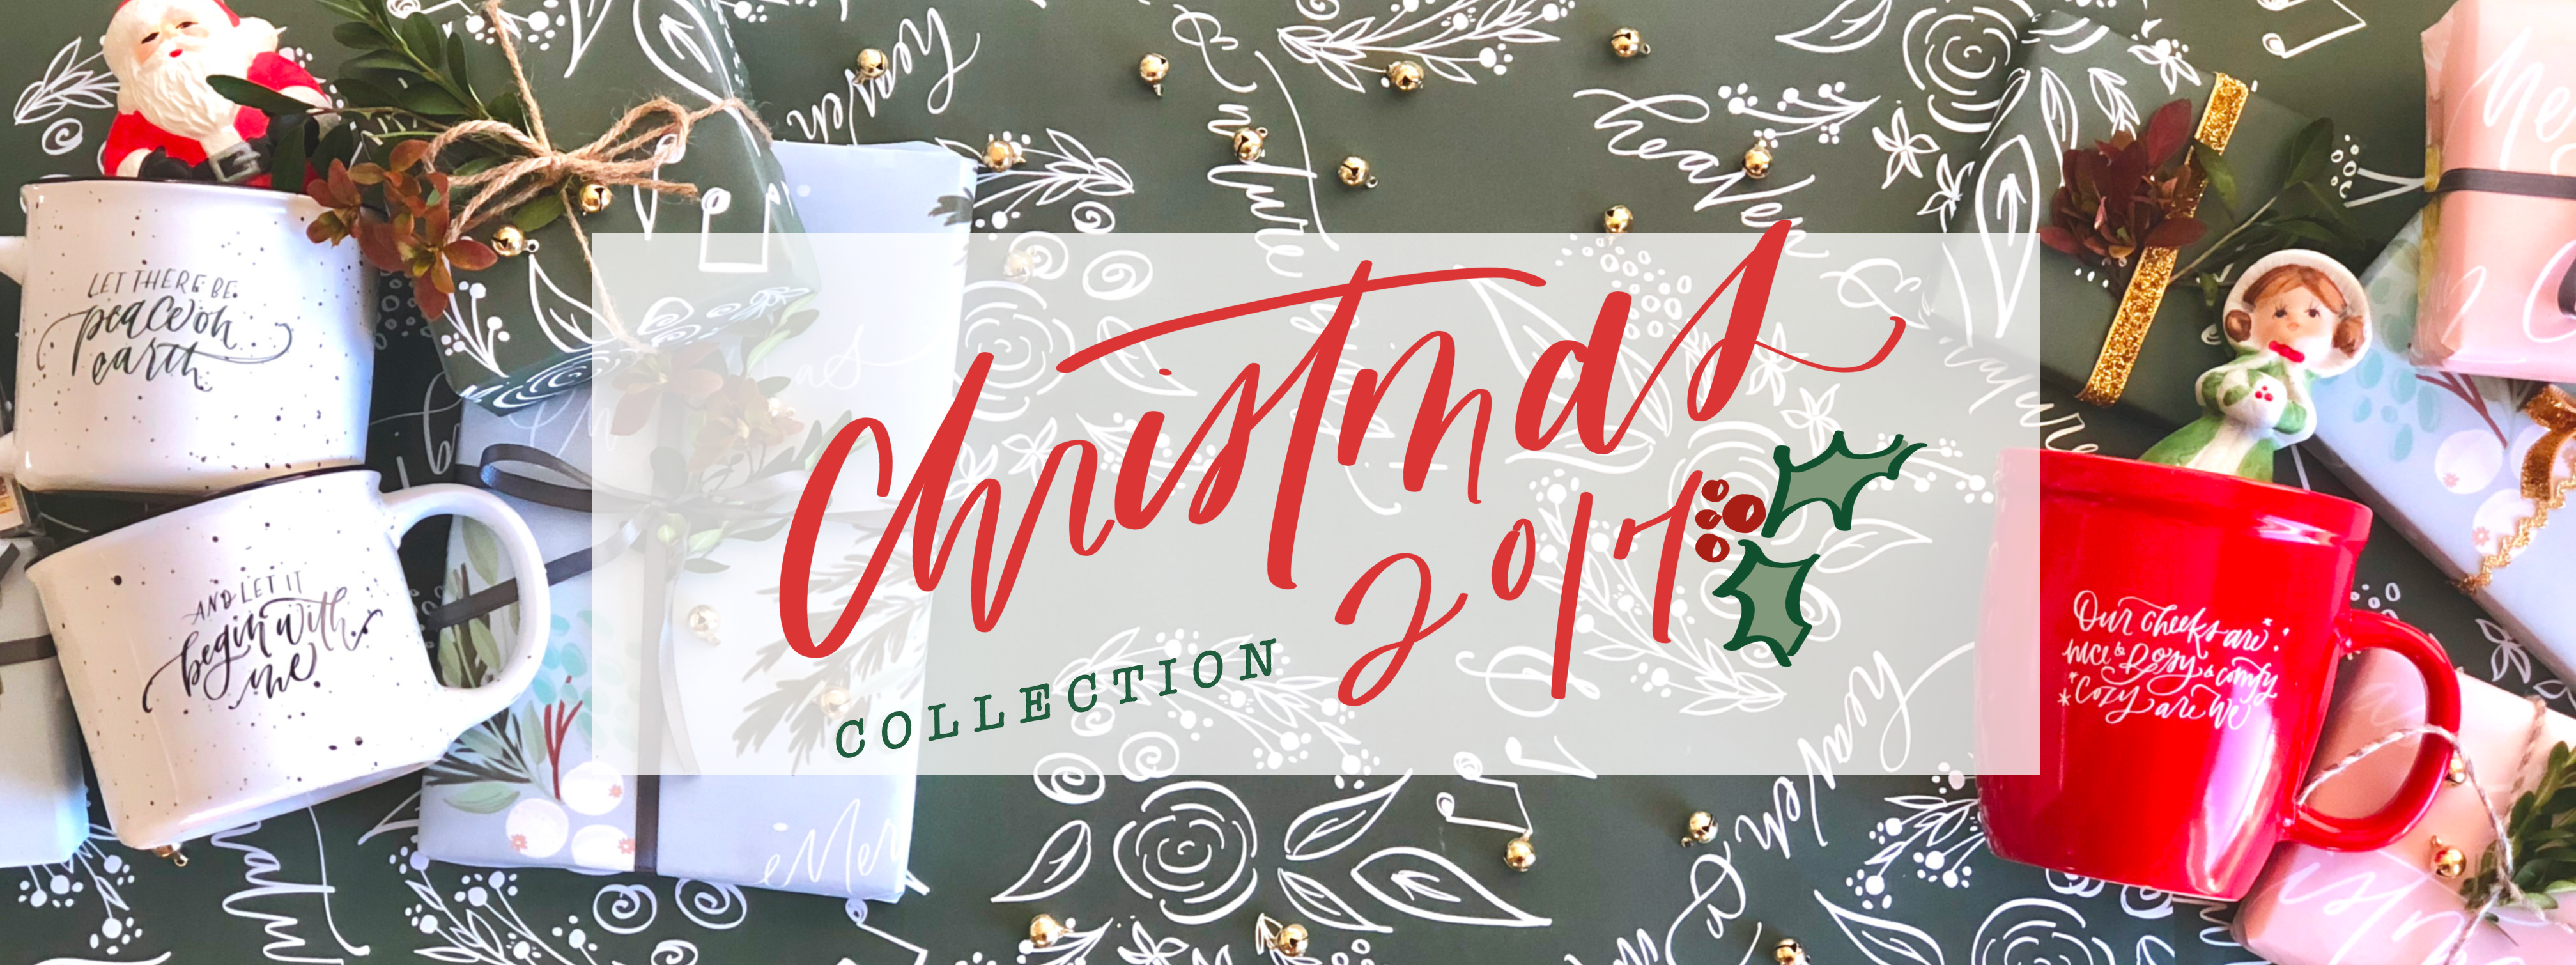 The 2017 Lovely Christmas Collection